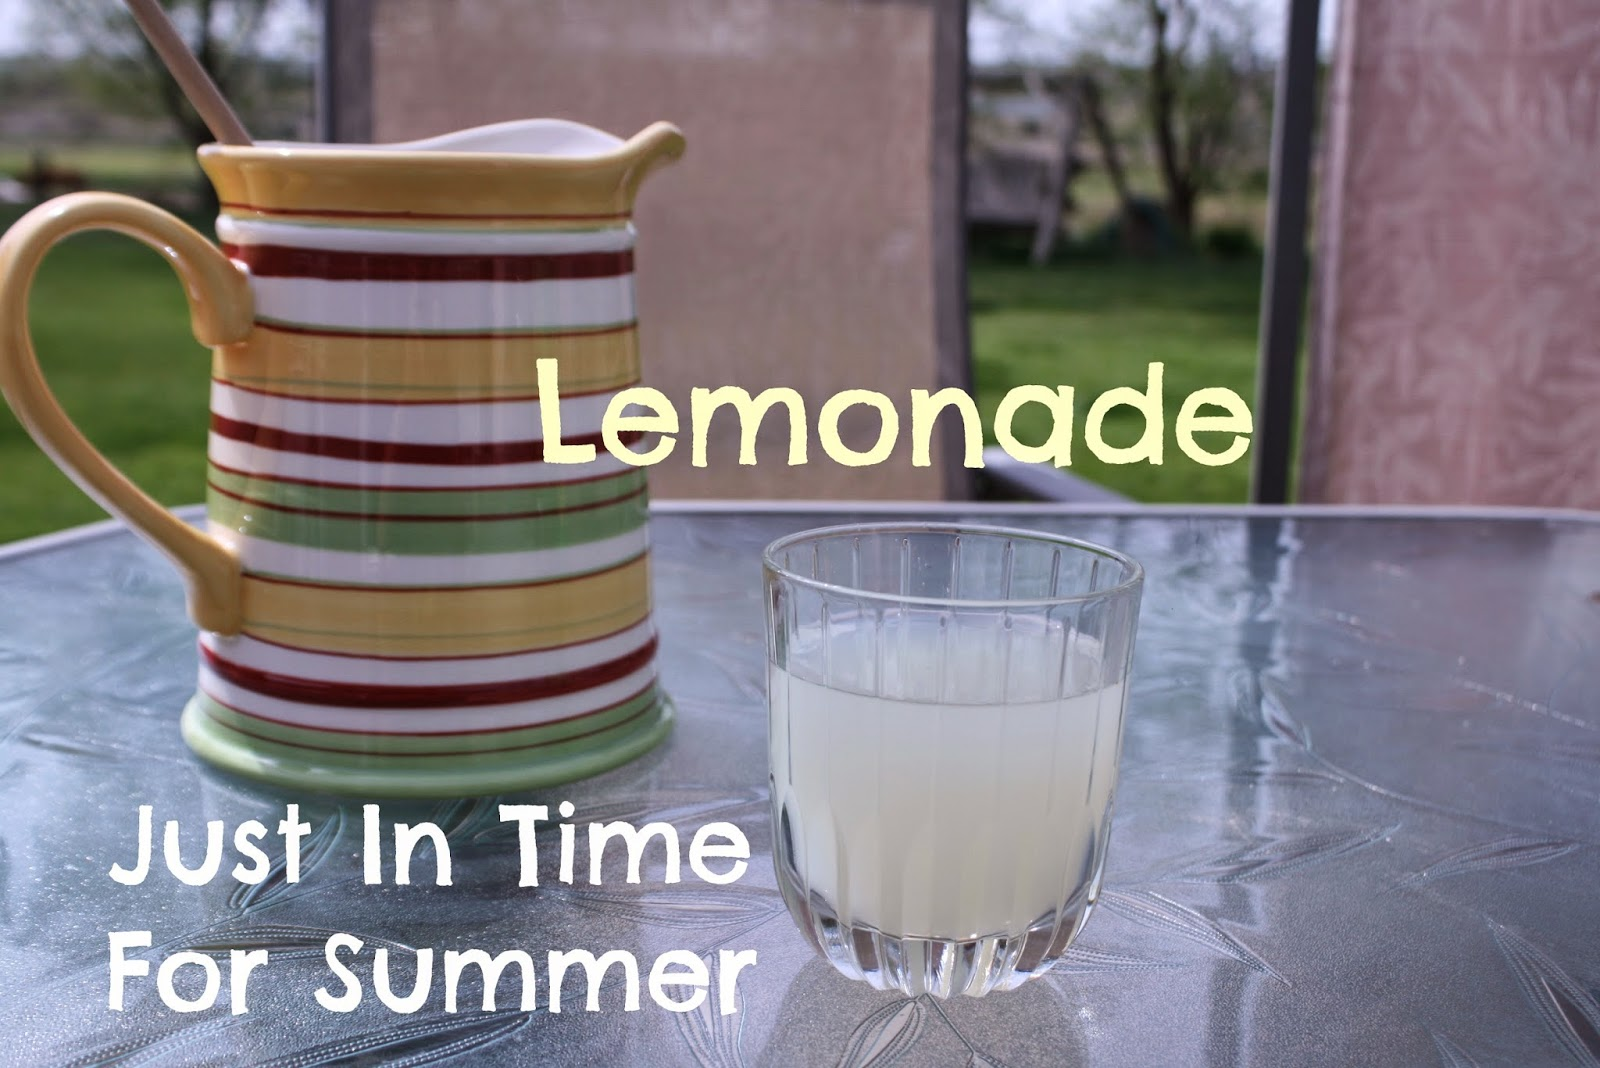 http://lovelydoesit.com/2014/06/01/make-monday-vol-5-lemonade/